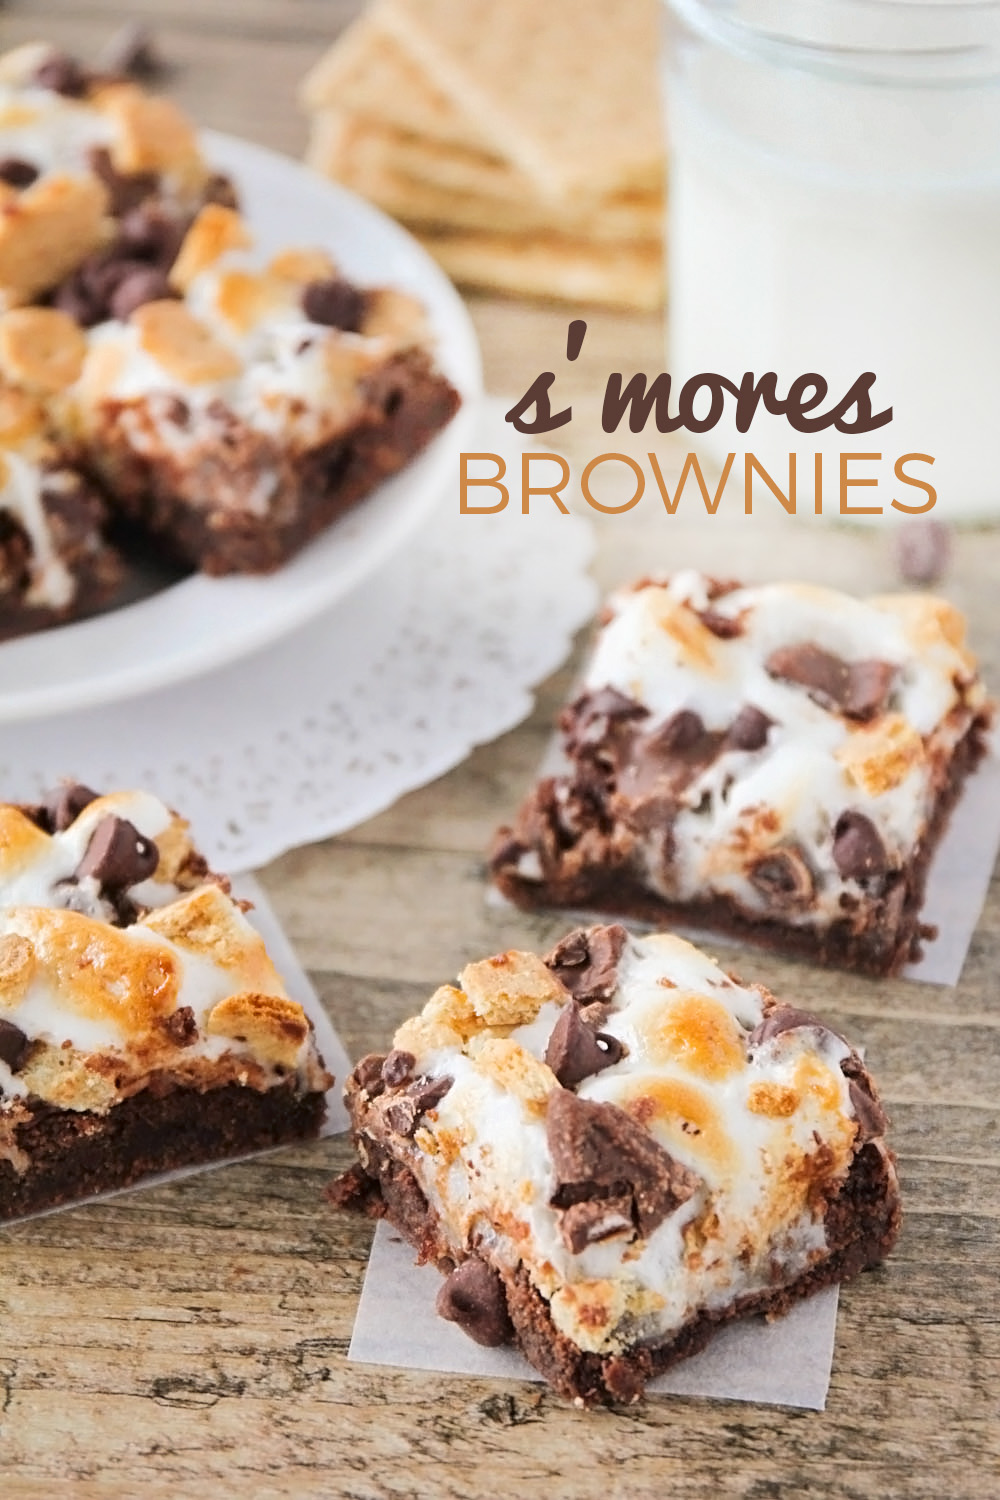 These luscious and decadent s'mores brownies are out of this world amazing!